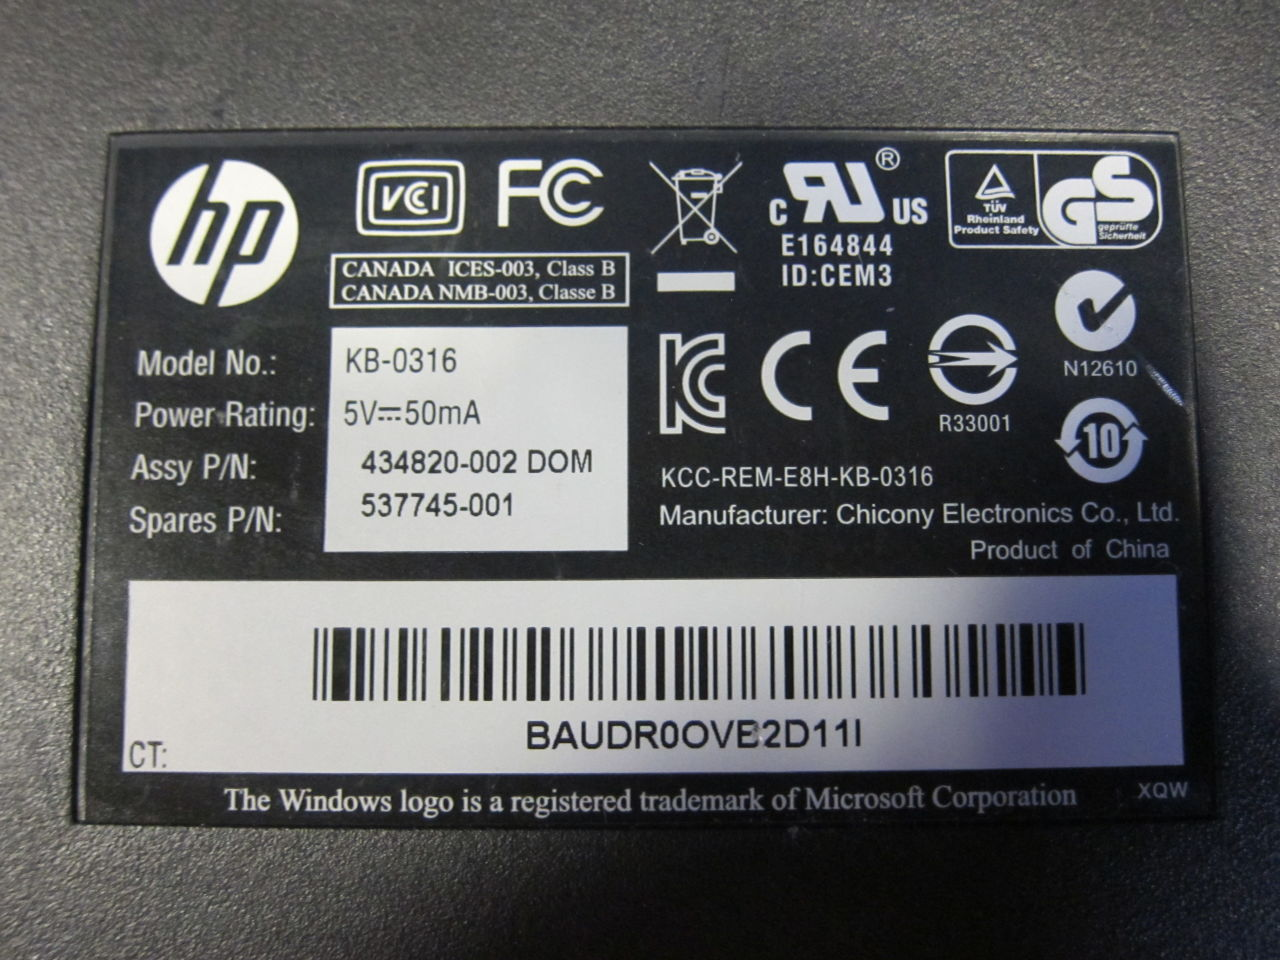 HP KB-0316 Keyboards - Lot of 2